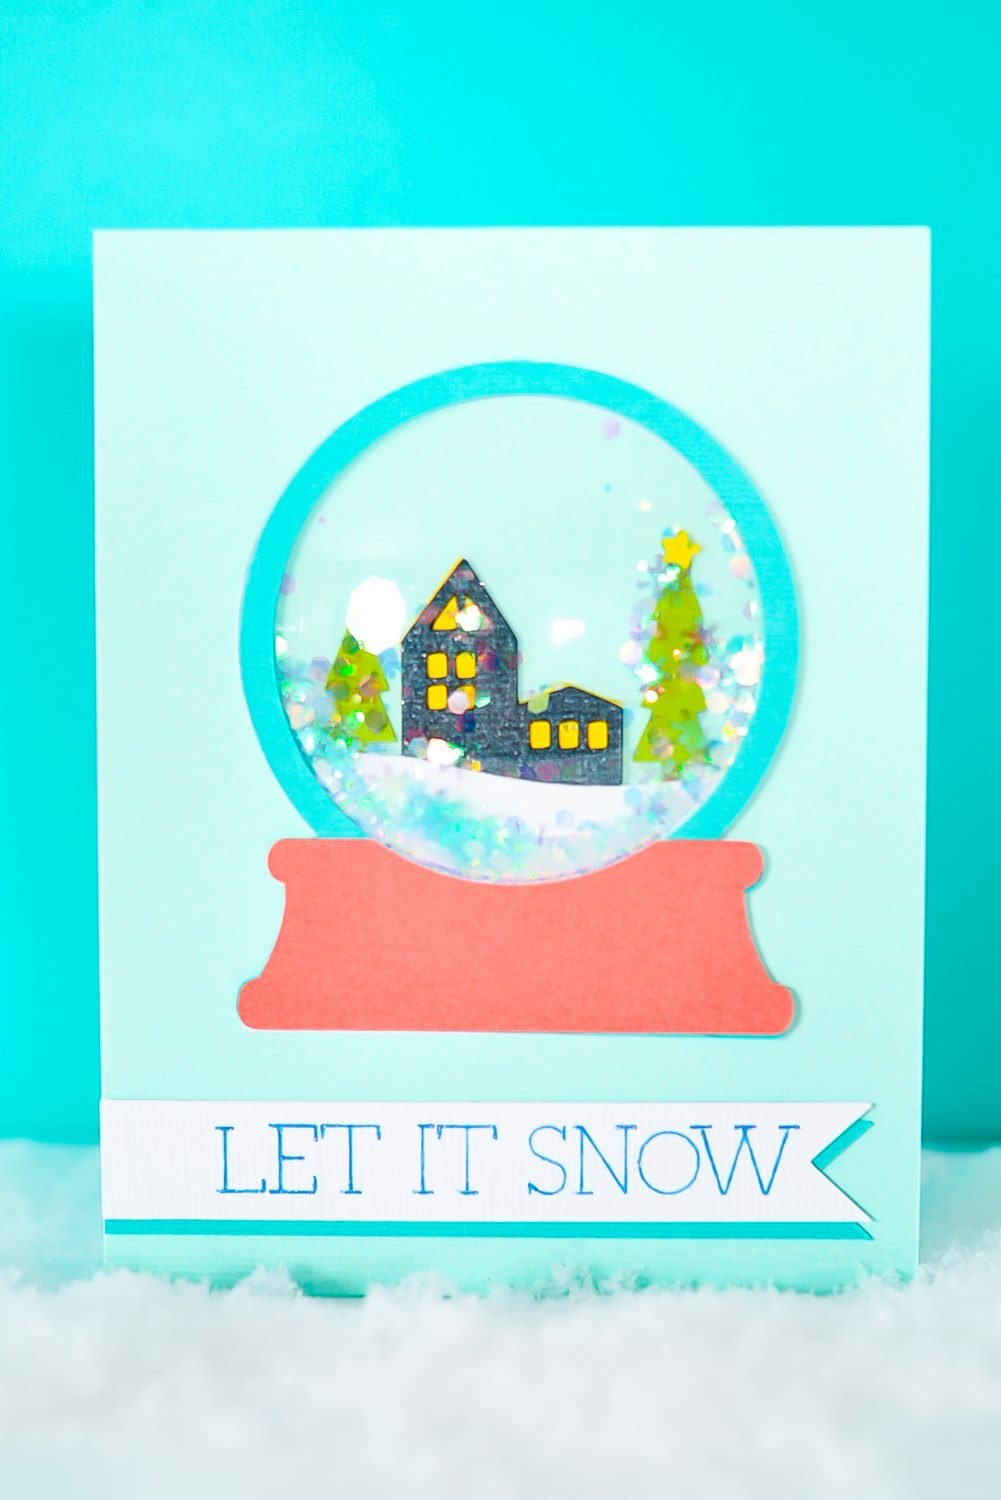 Finished snowglobe shaker card with fame snow and blue background.